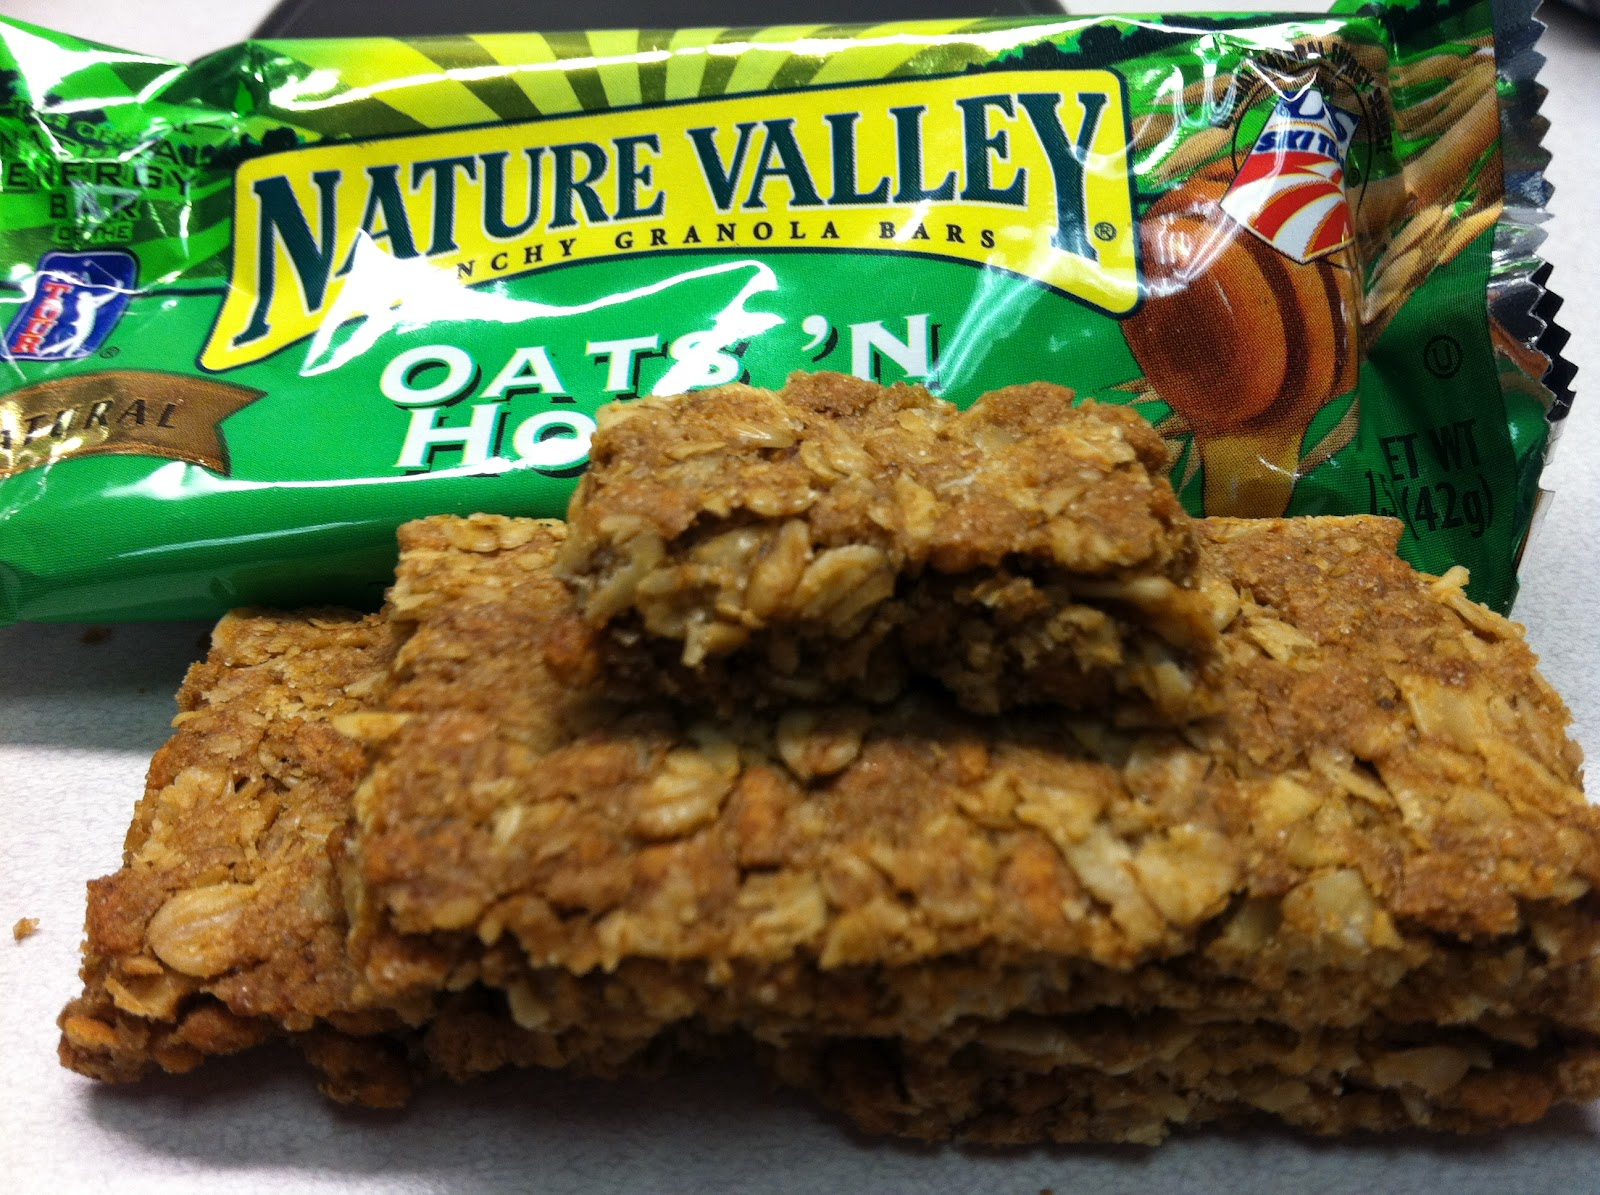 10 granola bars you should never eat and their healthy swaps http3bpspot pitiuz1enpkt0apo3knzbiaaaaaaaadxkzlvb8o6bfpws1600naturevalley oats2527nhoneybarcloseg ccuart Image collections